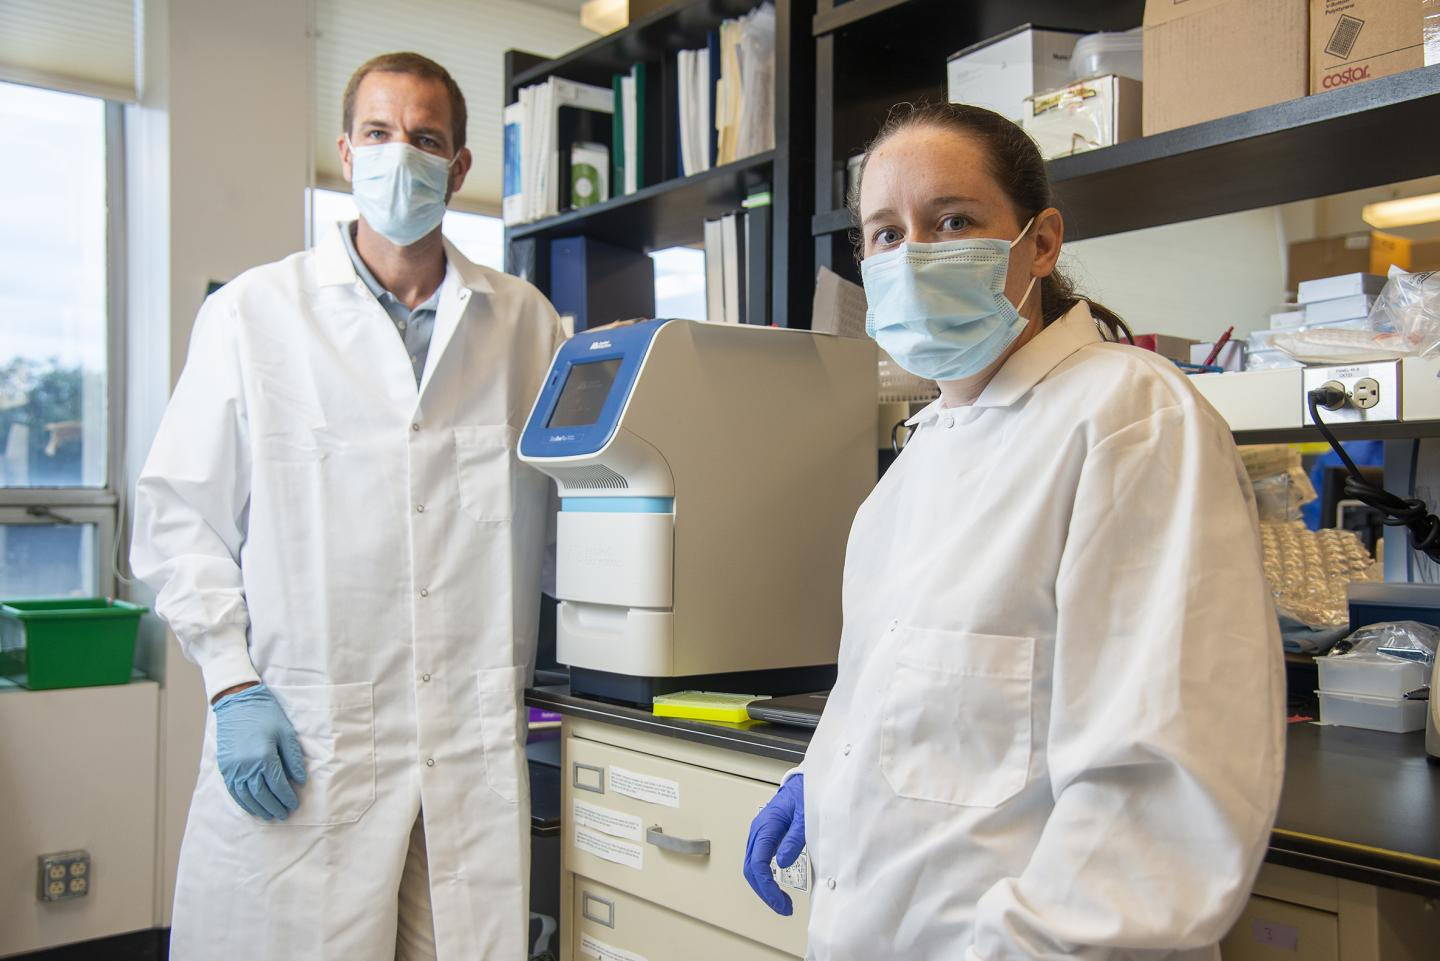 Jason Botten and Emily Bruce, who pioneered a streamlined COVID-19 test that doesn't use scarce chemicals, in their research lab in the University of Vermont's Larner College of Medicine. The machine between them is used to measure the presence and quantity of viral RNA in patient samples. (Photo: Brian Jenkins)